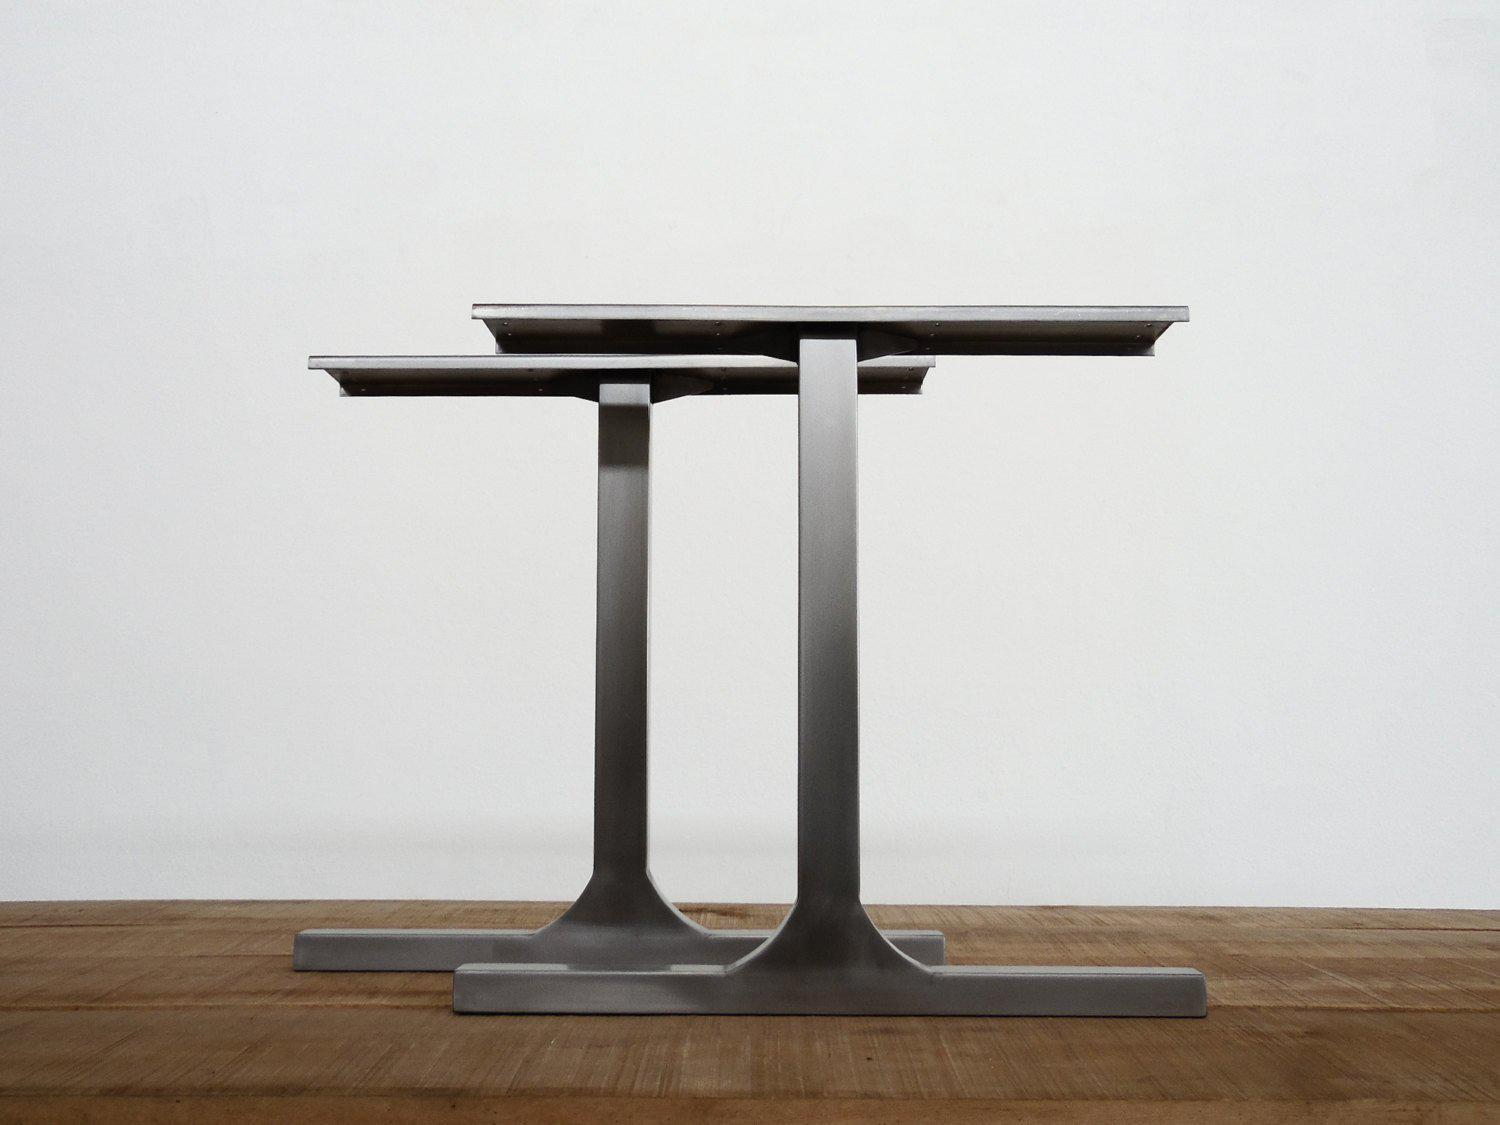 Industrial Table Legs -For Modern Metal Furniture Designs | Balasagun